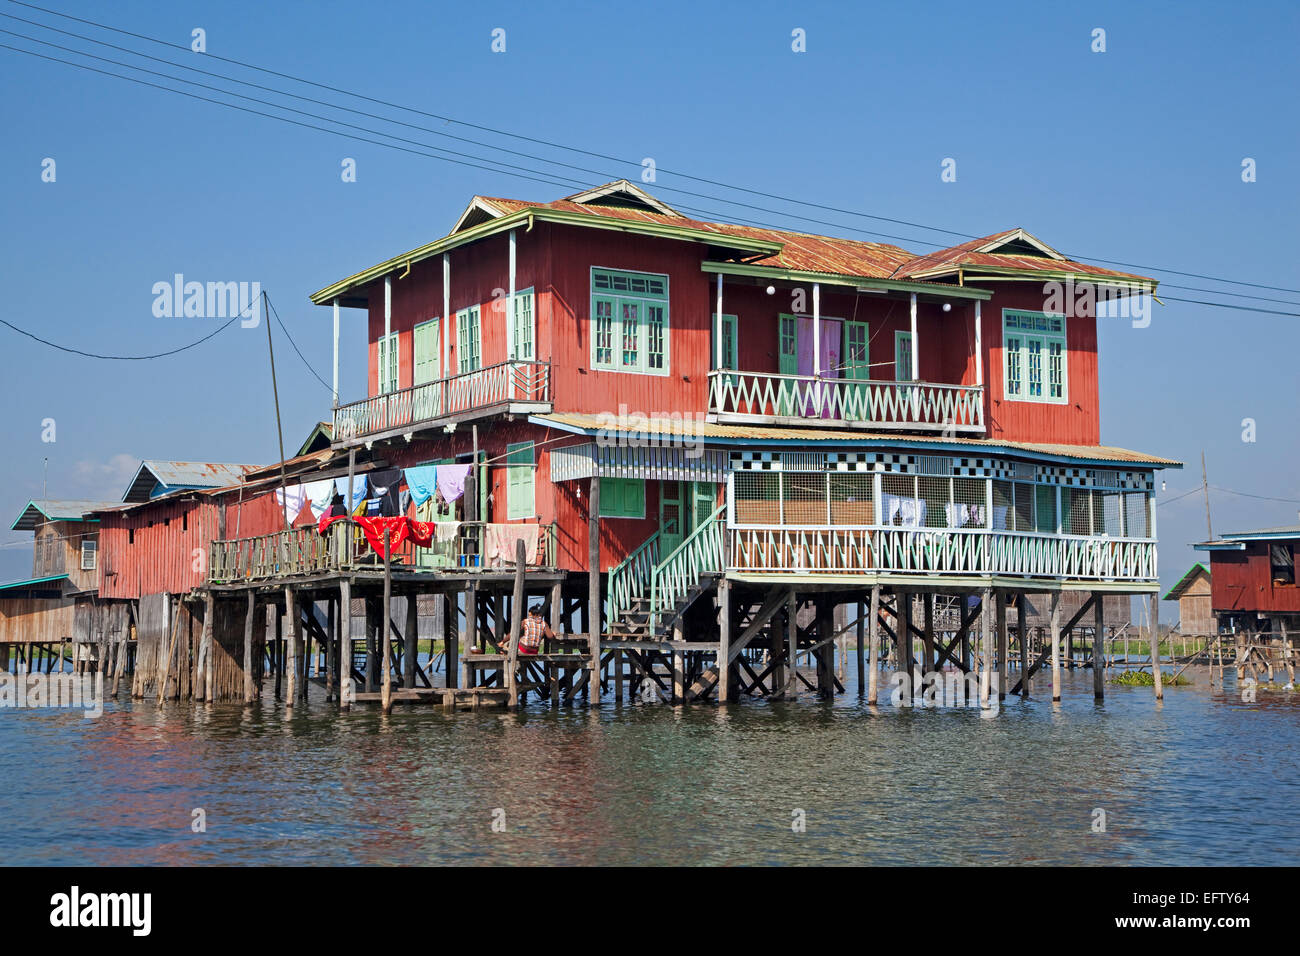 Traditional wooden houses on stilts in Inle Lake, Nyaungshwe, Shan State, Myanmar / Burma - Stock Image